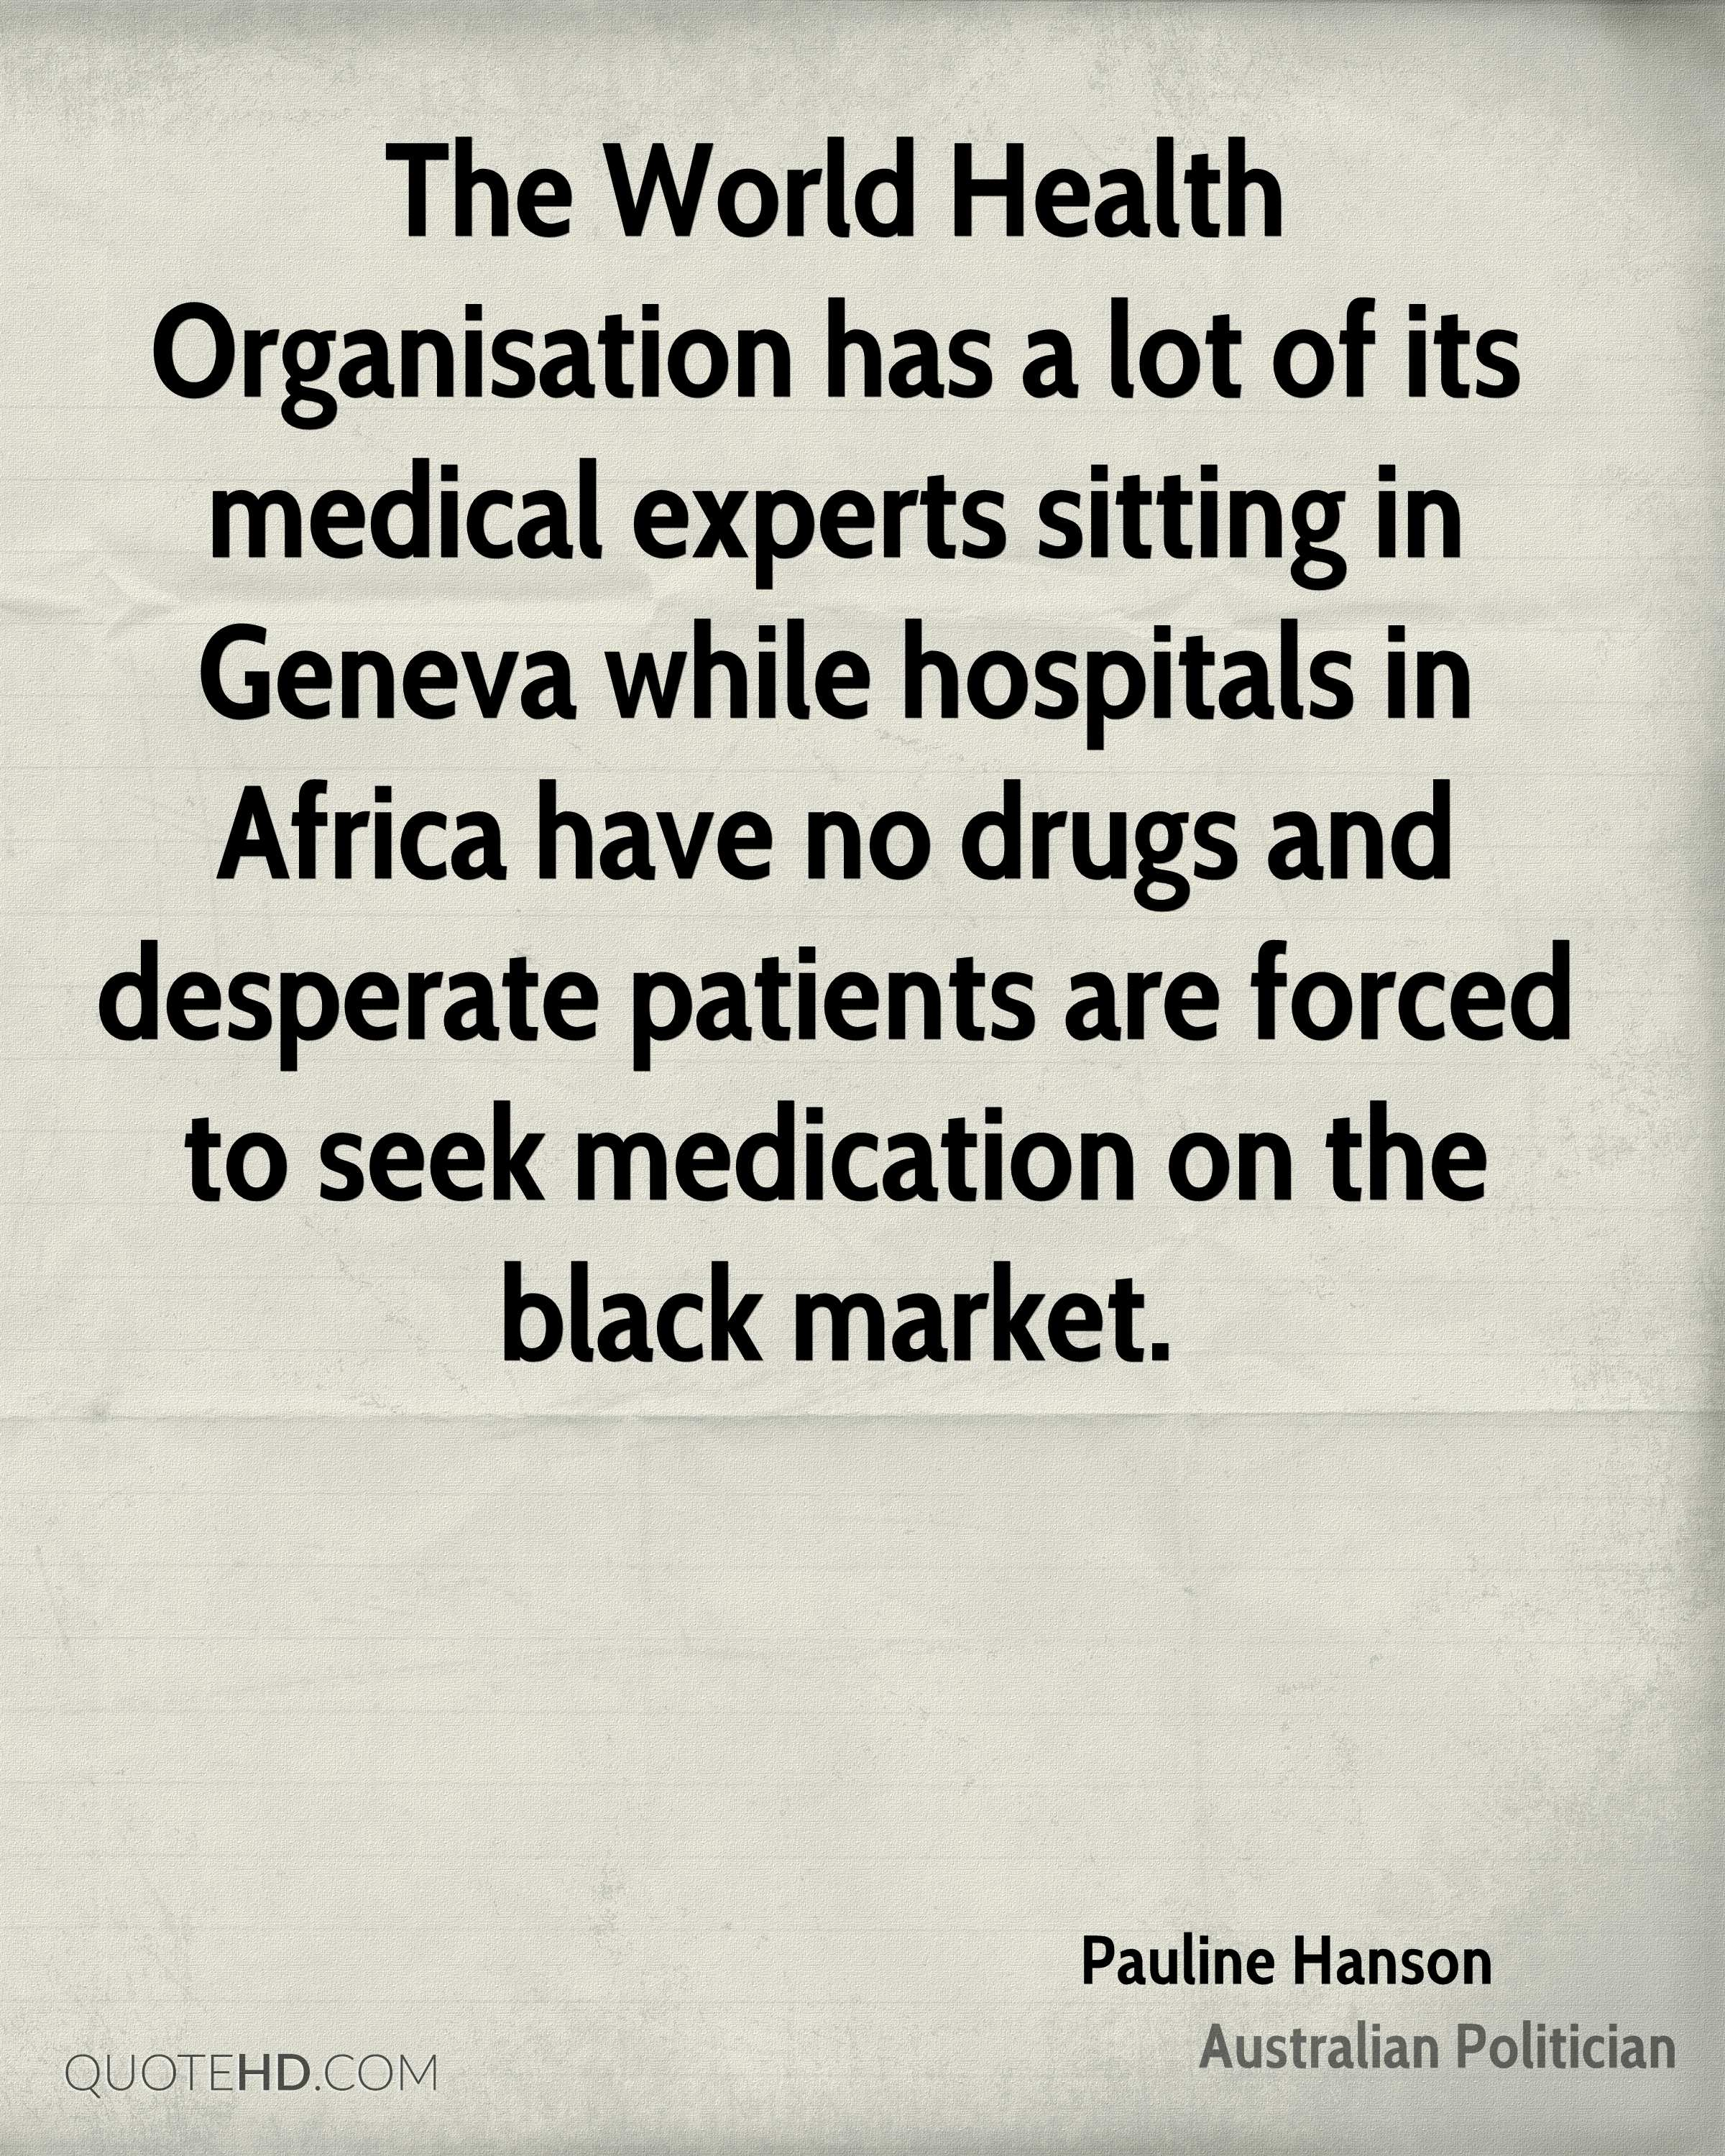 The World Health Organisation has a lot of its medical experts sitting in Geneva while hospitals in Africa have no drugs and desperate patients are forced to seek medication on the black market.